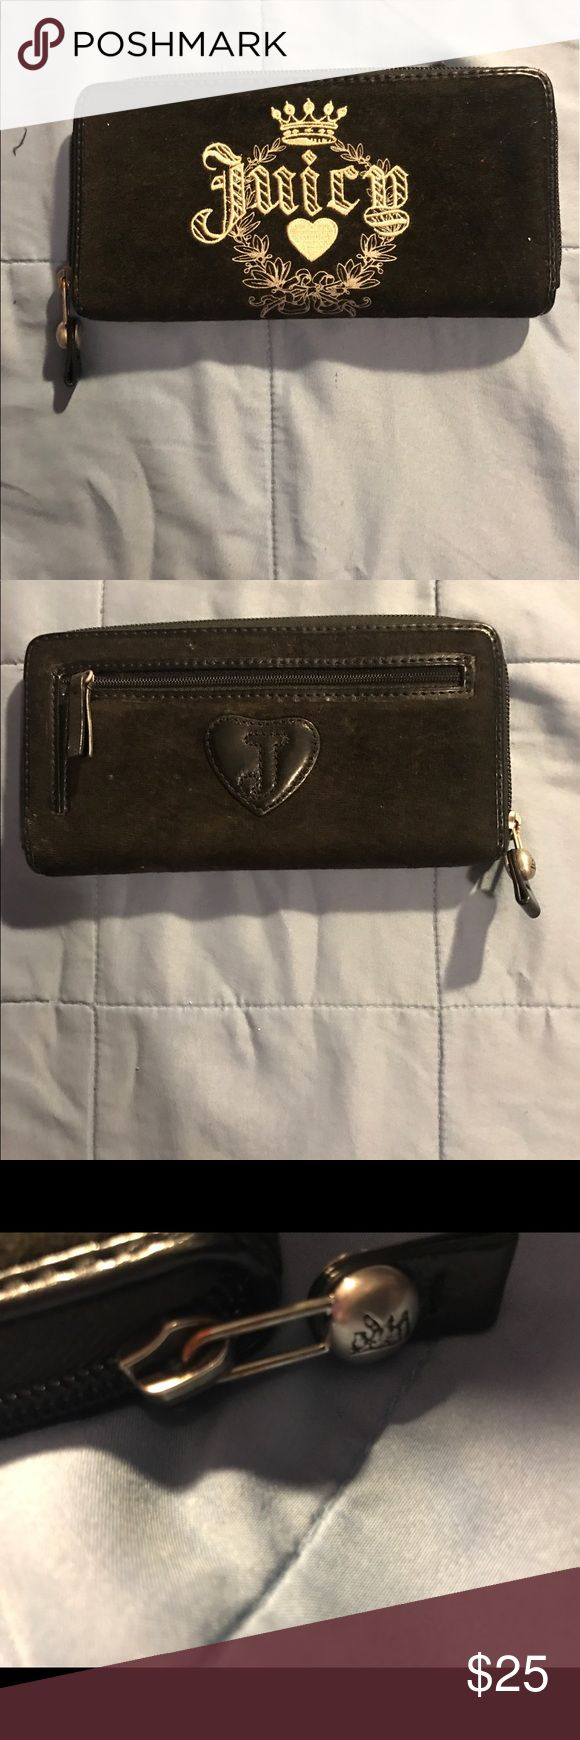 WOMENS JUICY COUTURE BLACK SUEDE WALLET 100% authentic Juicy Couture. MSRP $150. Any questions about this item pls comment. Juicy Couture Bags Wallets